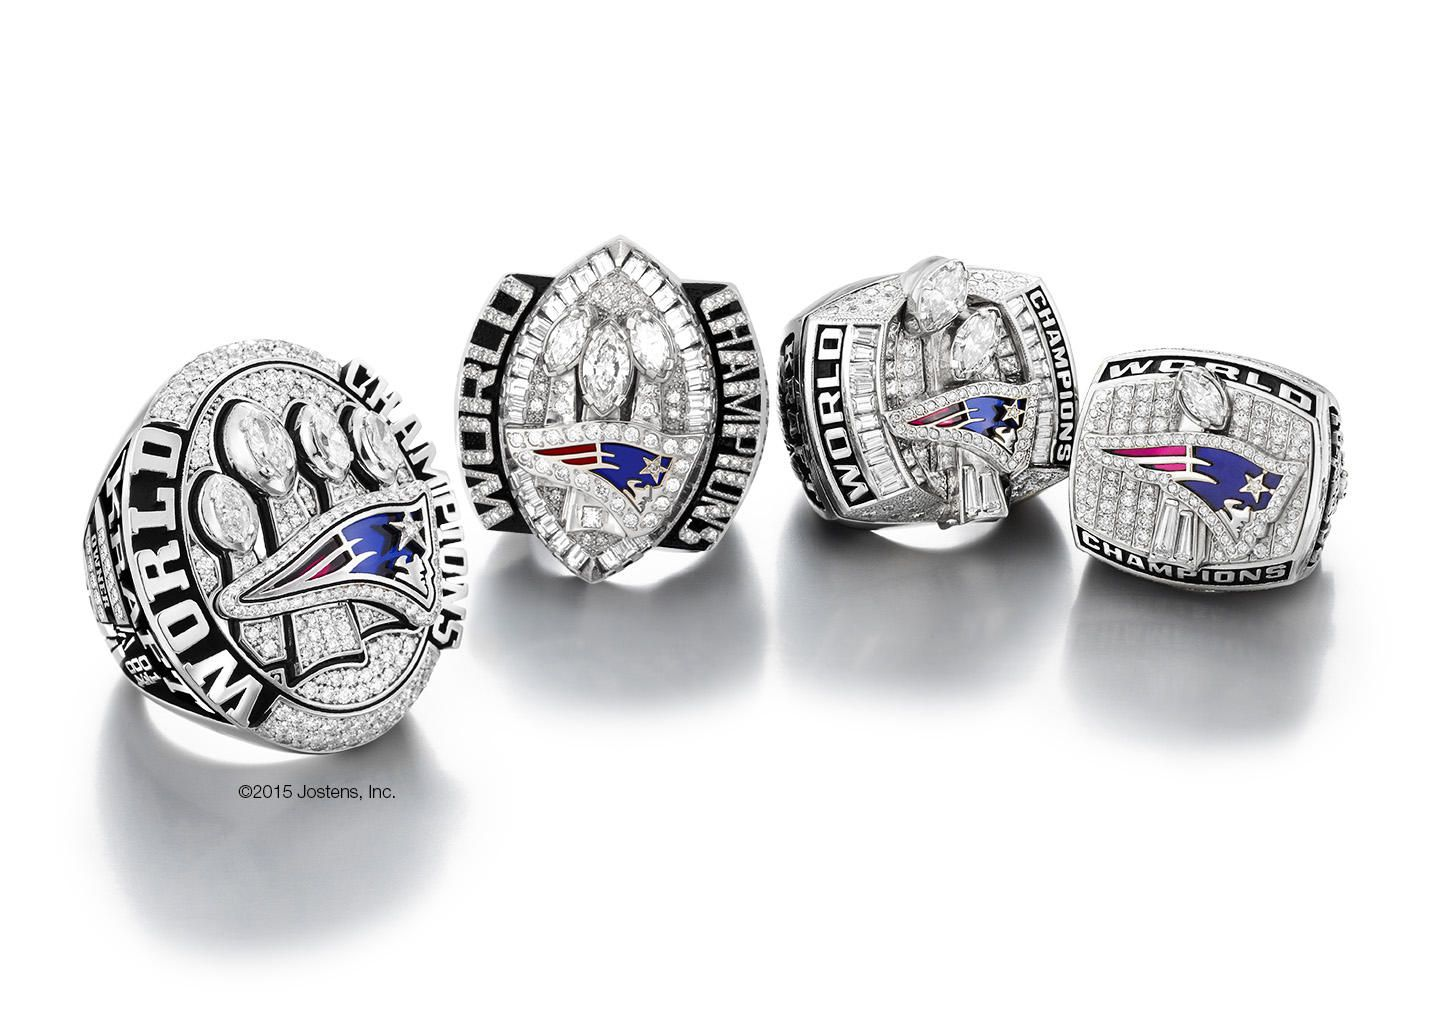 1000+ ideas about Super Bowl Rings on Pinterest | Championship ...